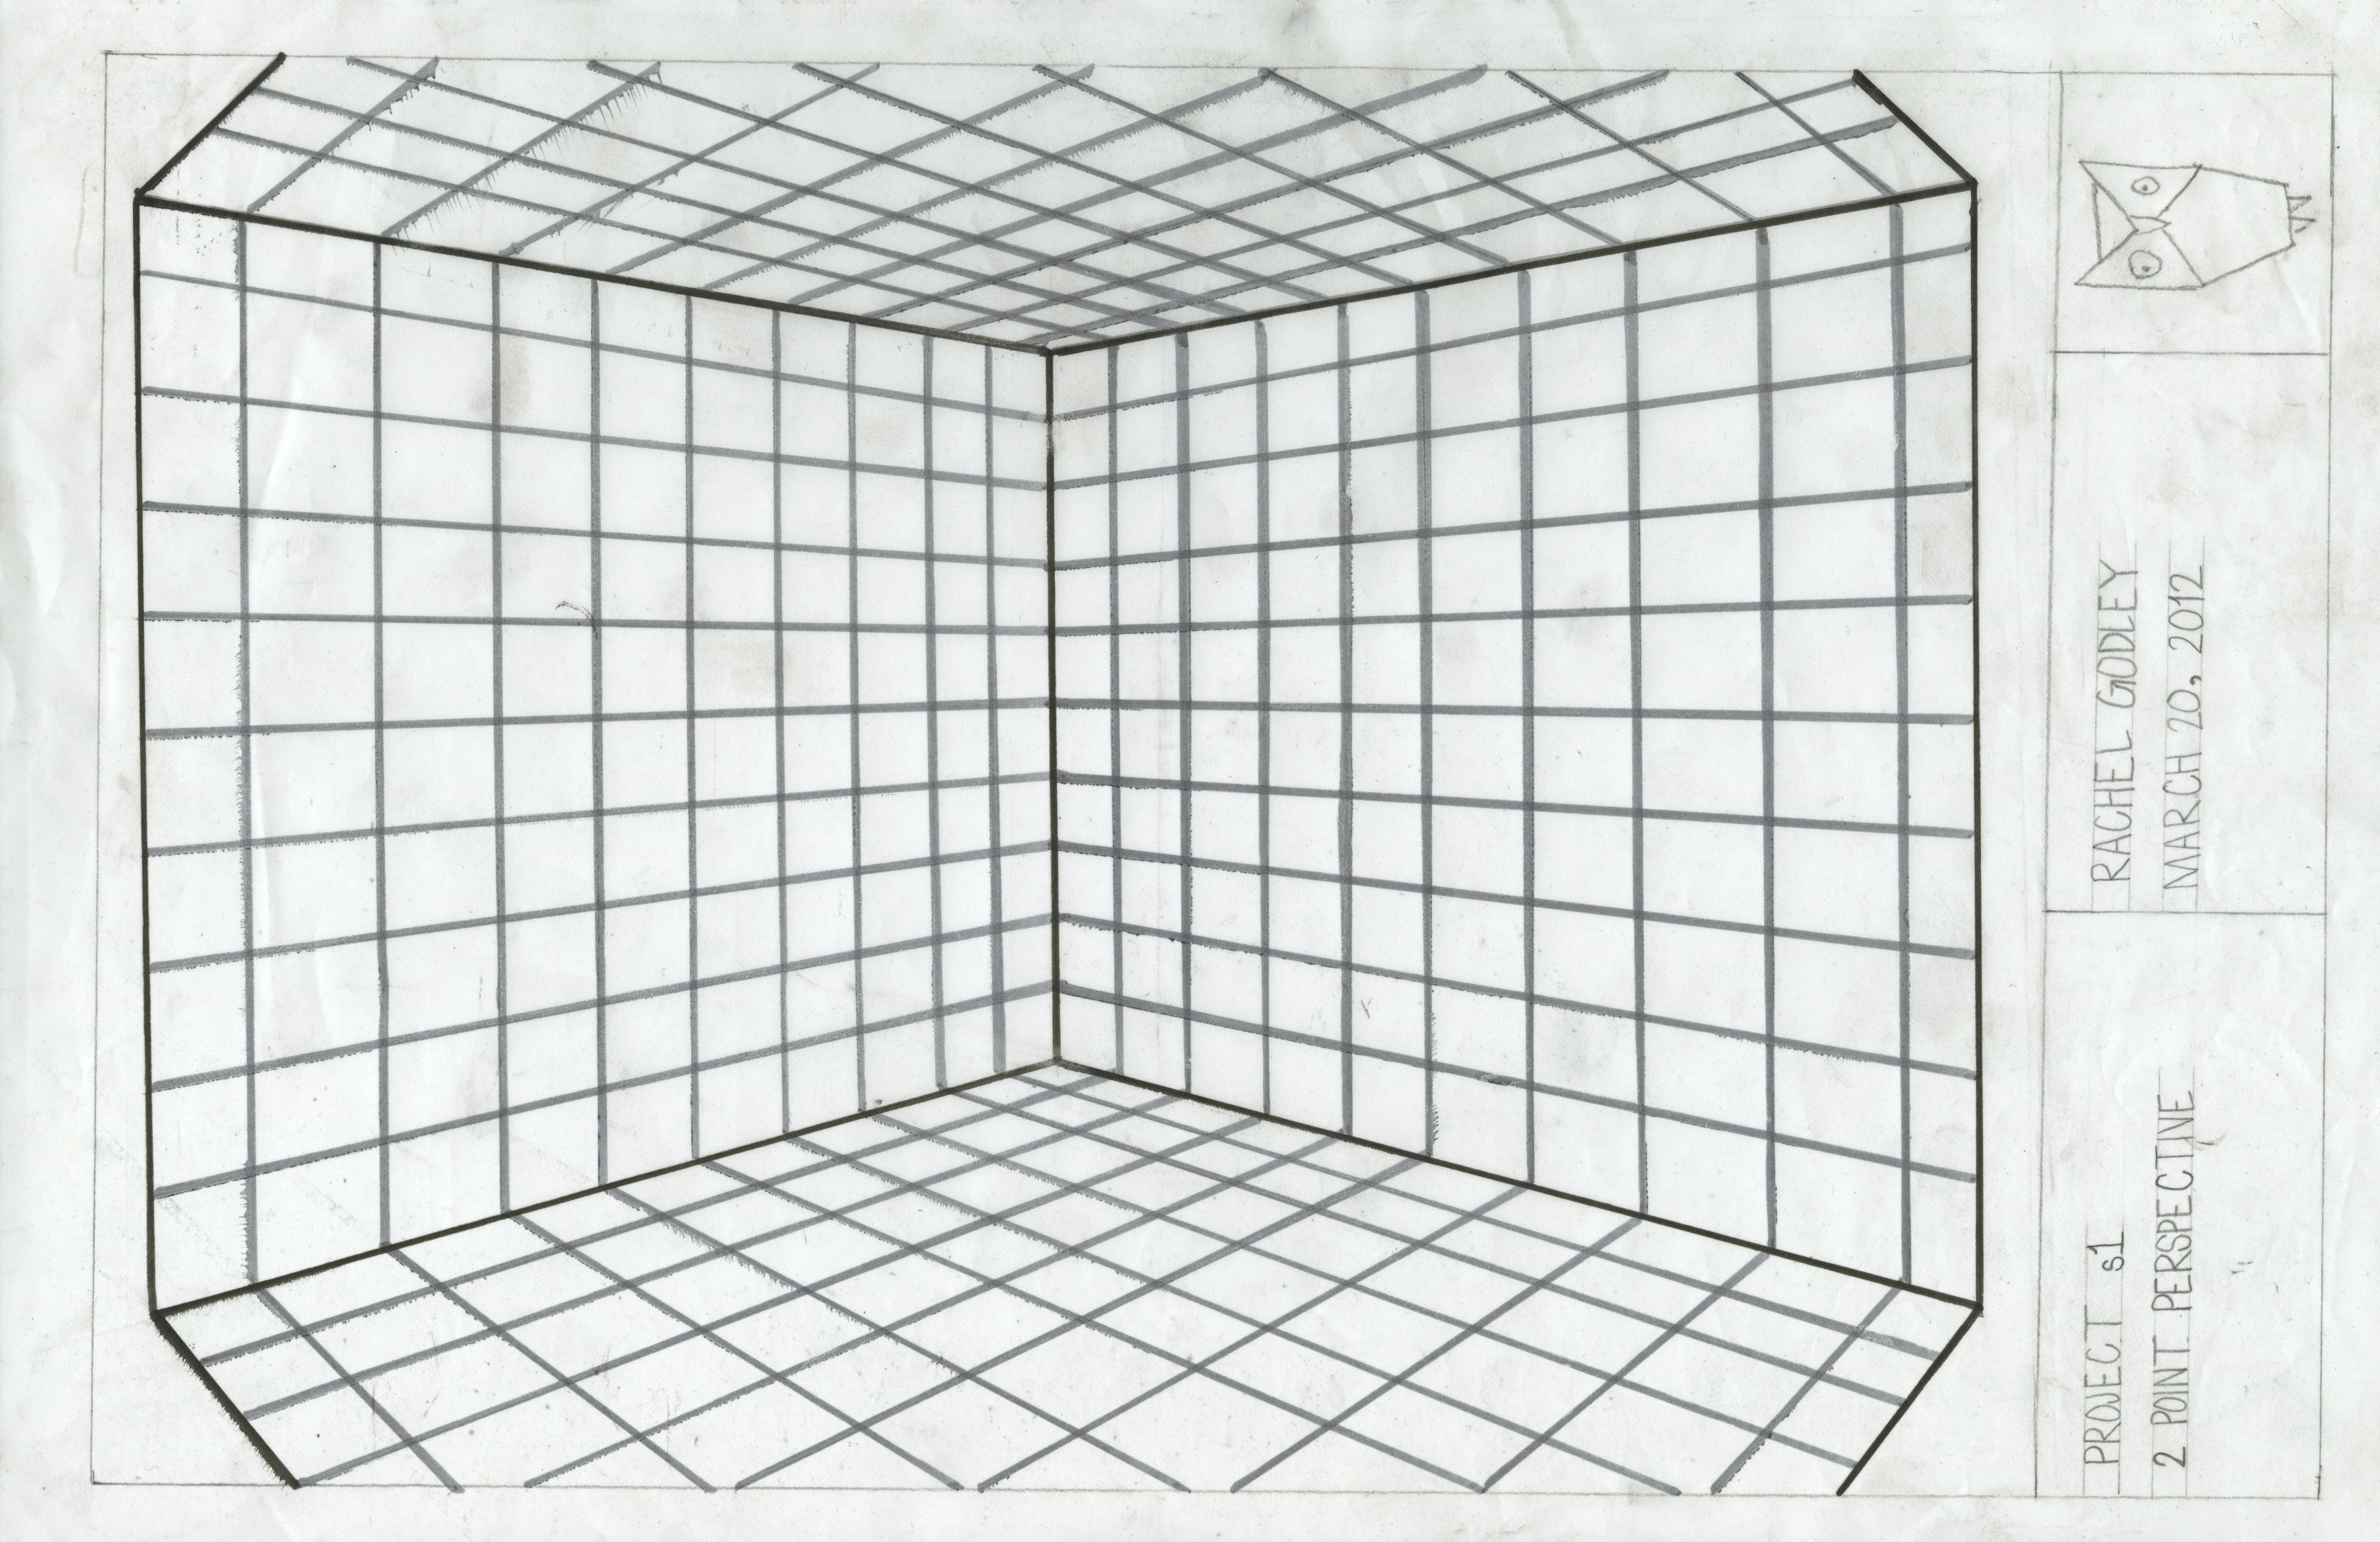 Grid Planner Online 6 Best Images Of Perspective Drawing Grids Printable One